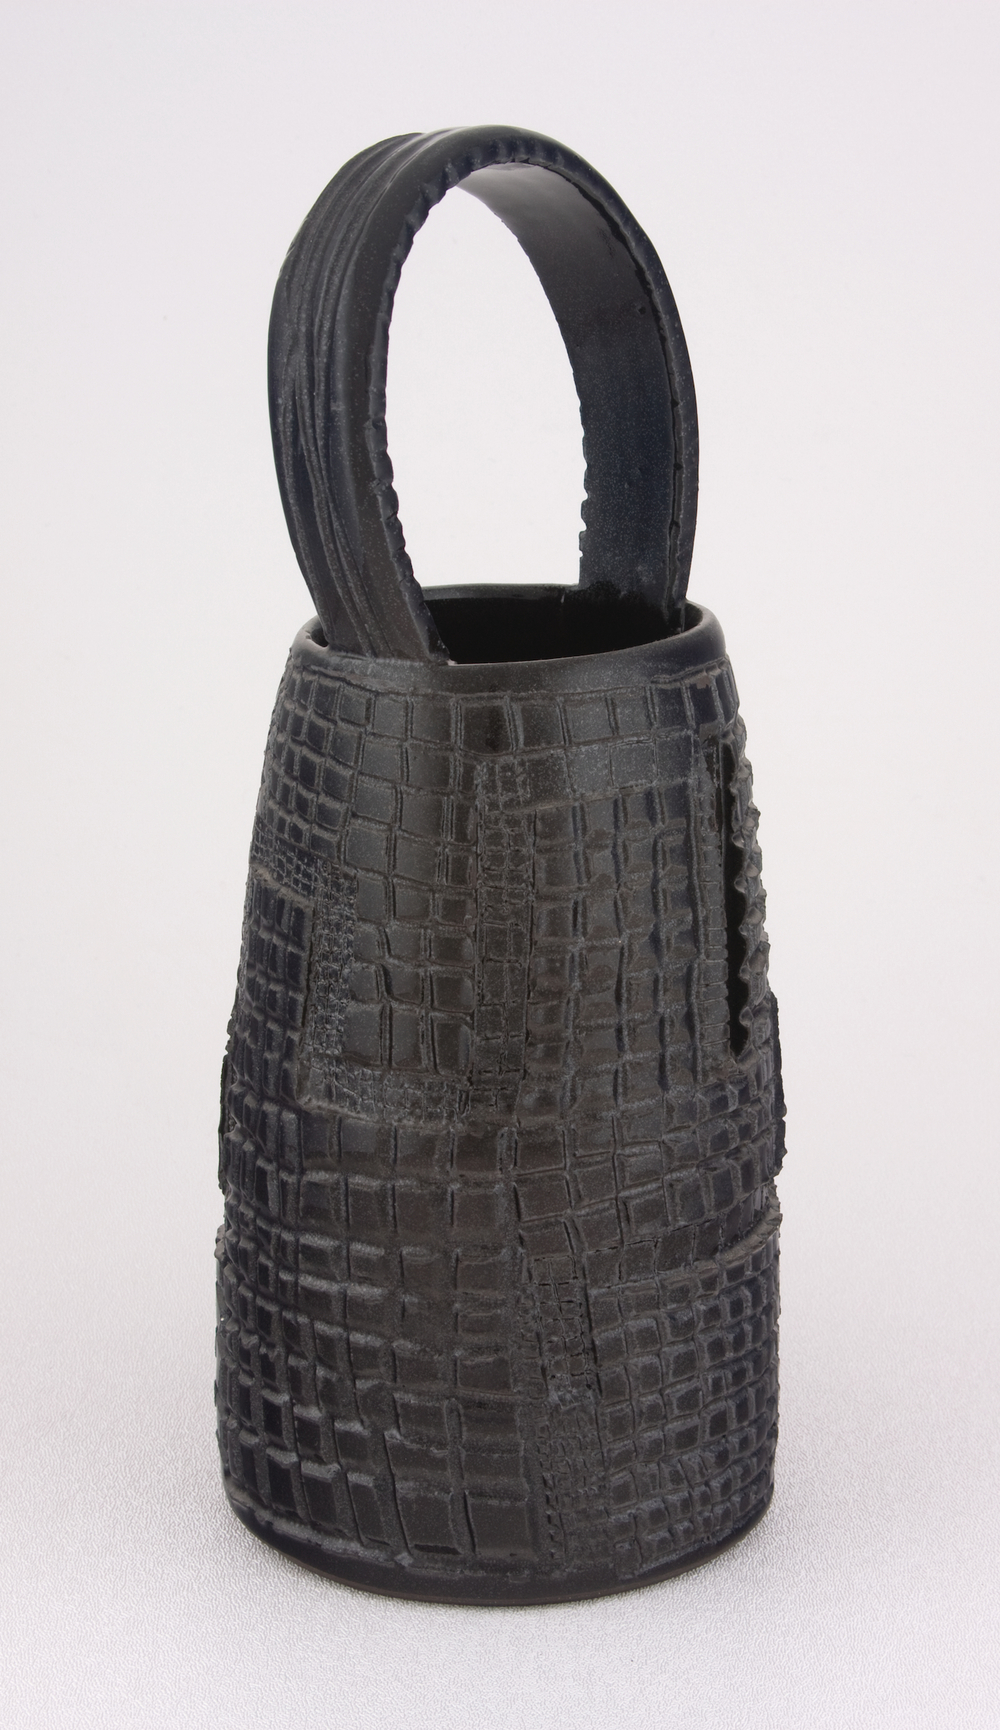 Shio Kusaka  Untitled (clay basket 1)  2005 Stoneware 10 ¾h x 4 ½w x 4 ½d in SK001